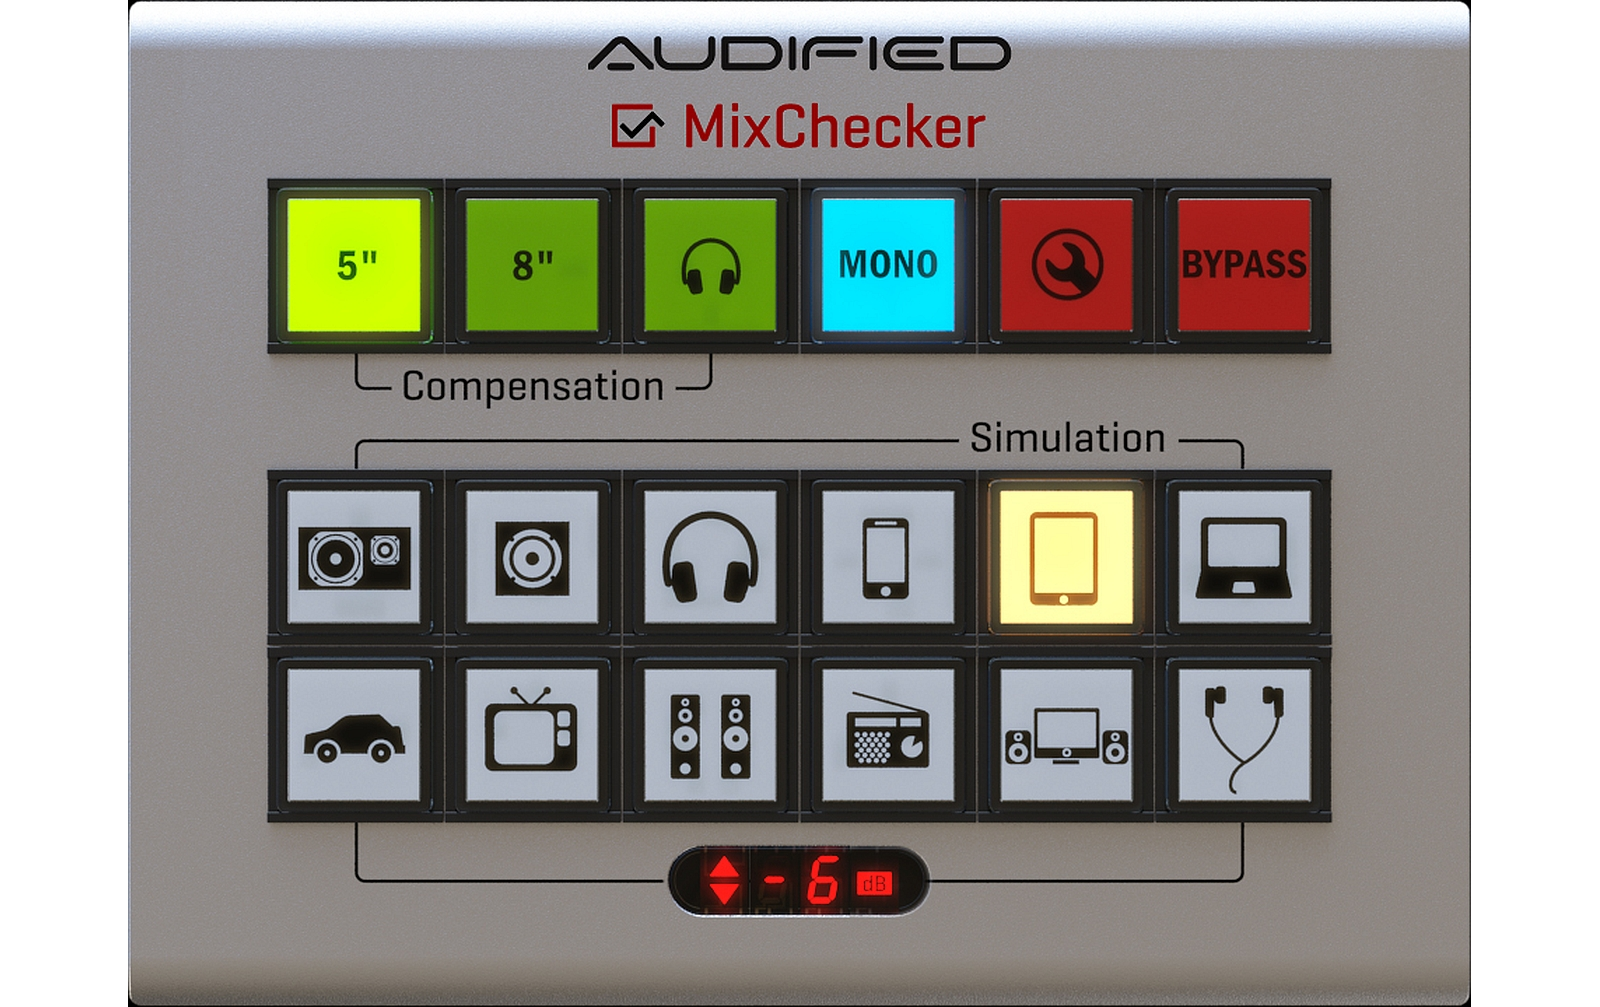 audified-mixchecker-esd-download-